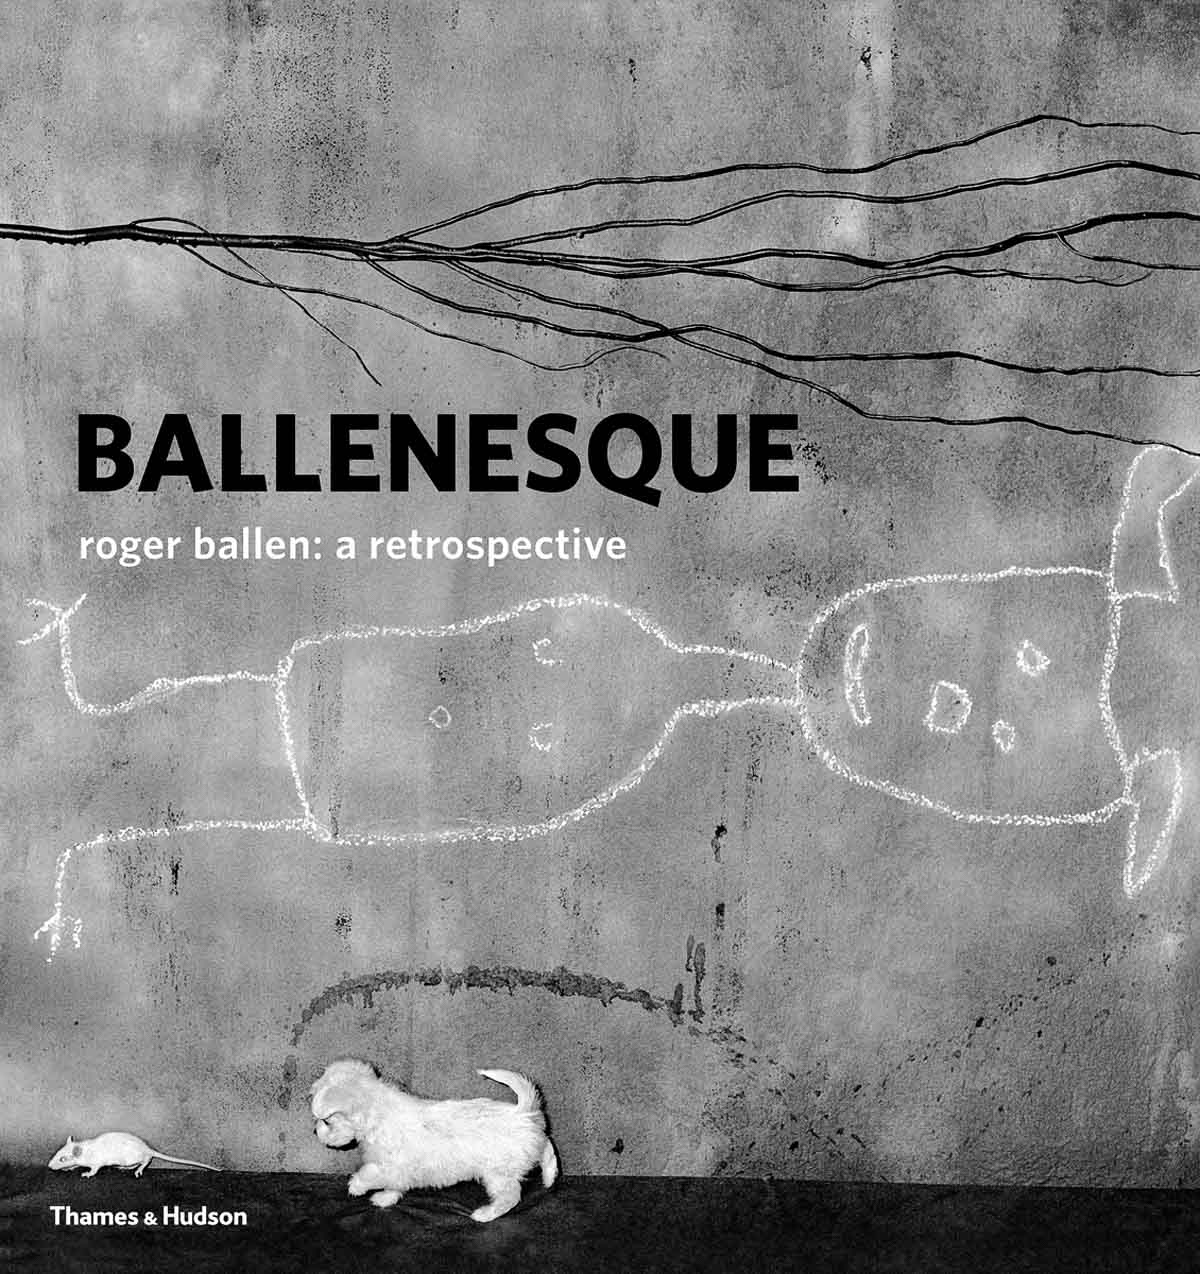 BALLENESQUE (Roger Ballen: A Retrospective) - culture - Roger Ballen, photography book, Photography, Ballenesque, Ballen, art book, Art